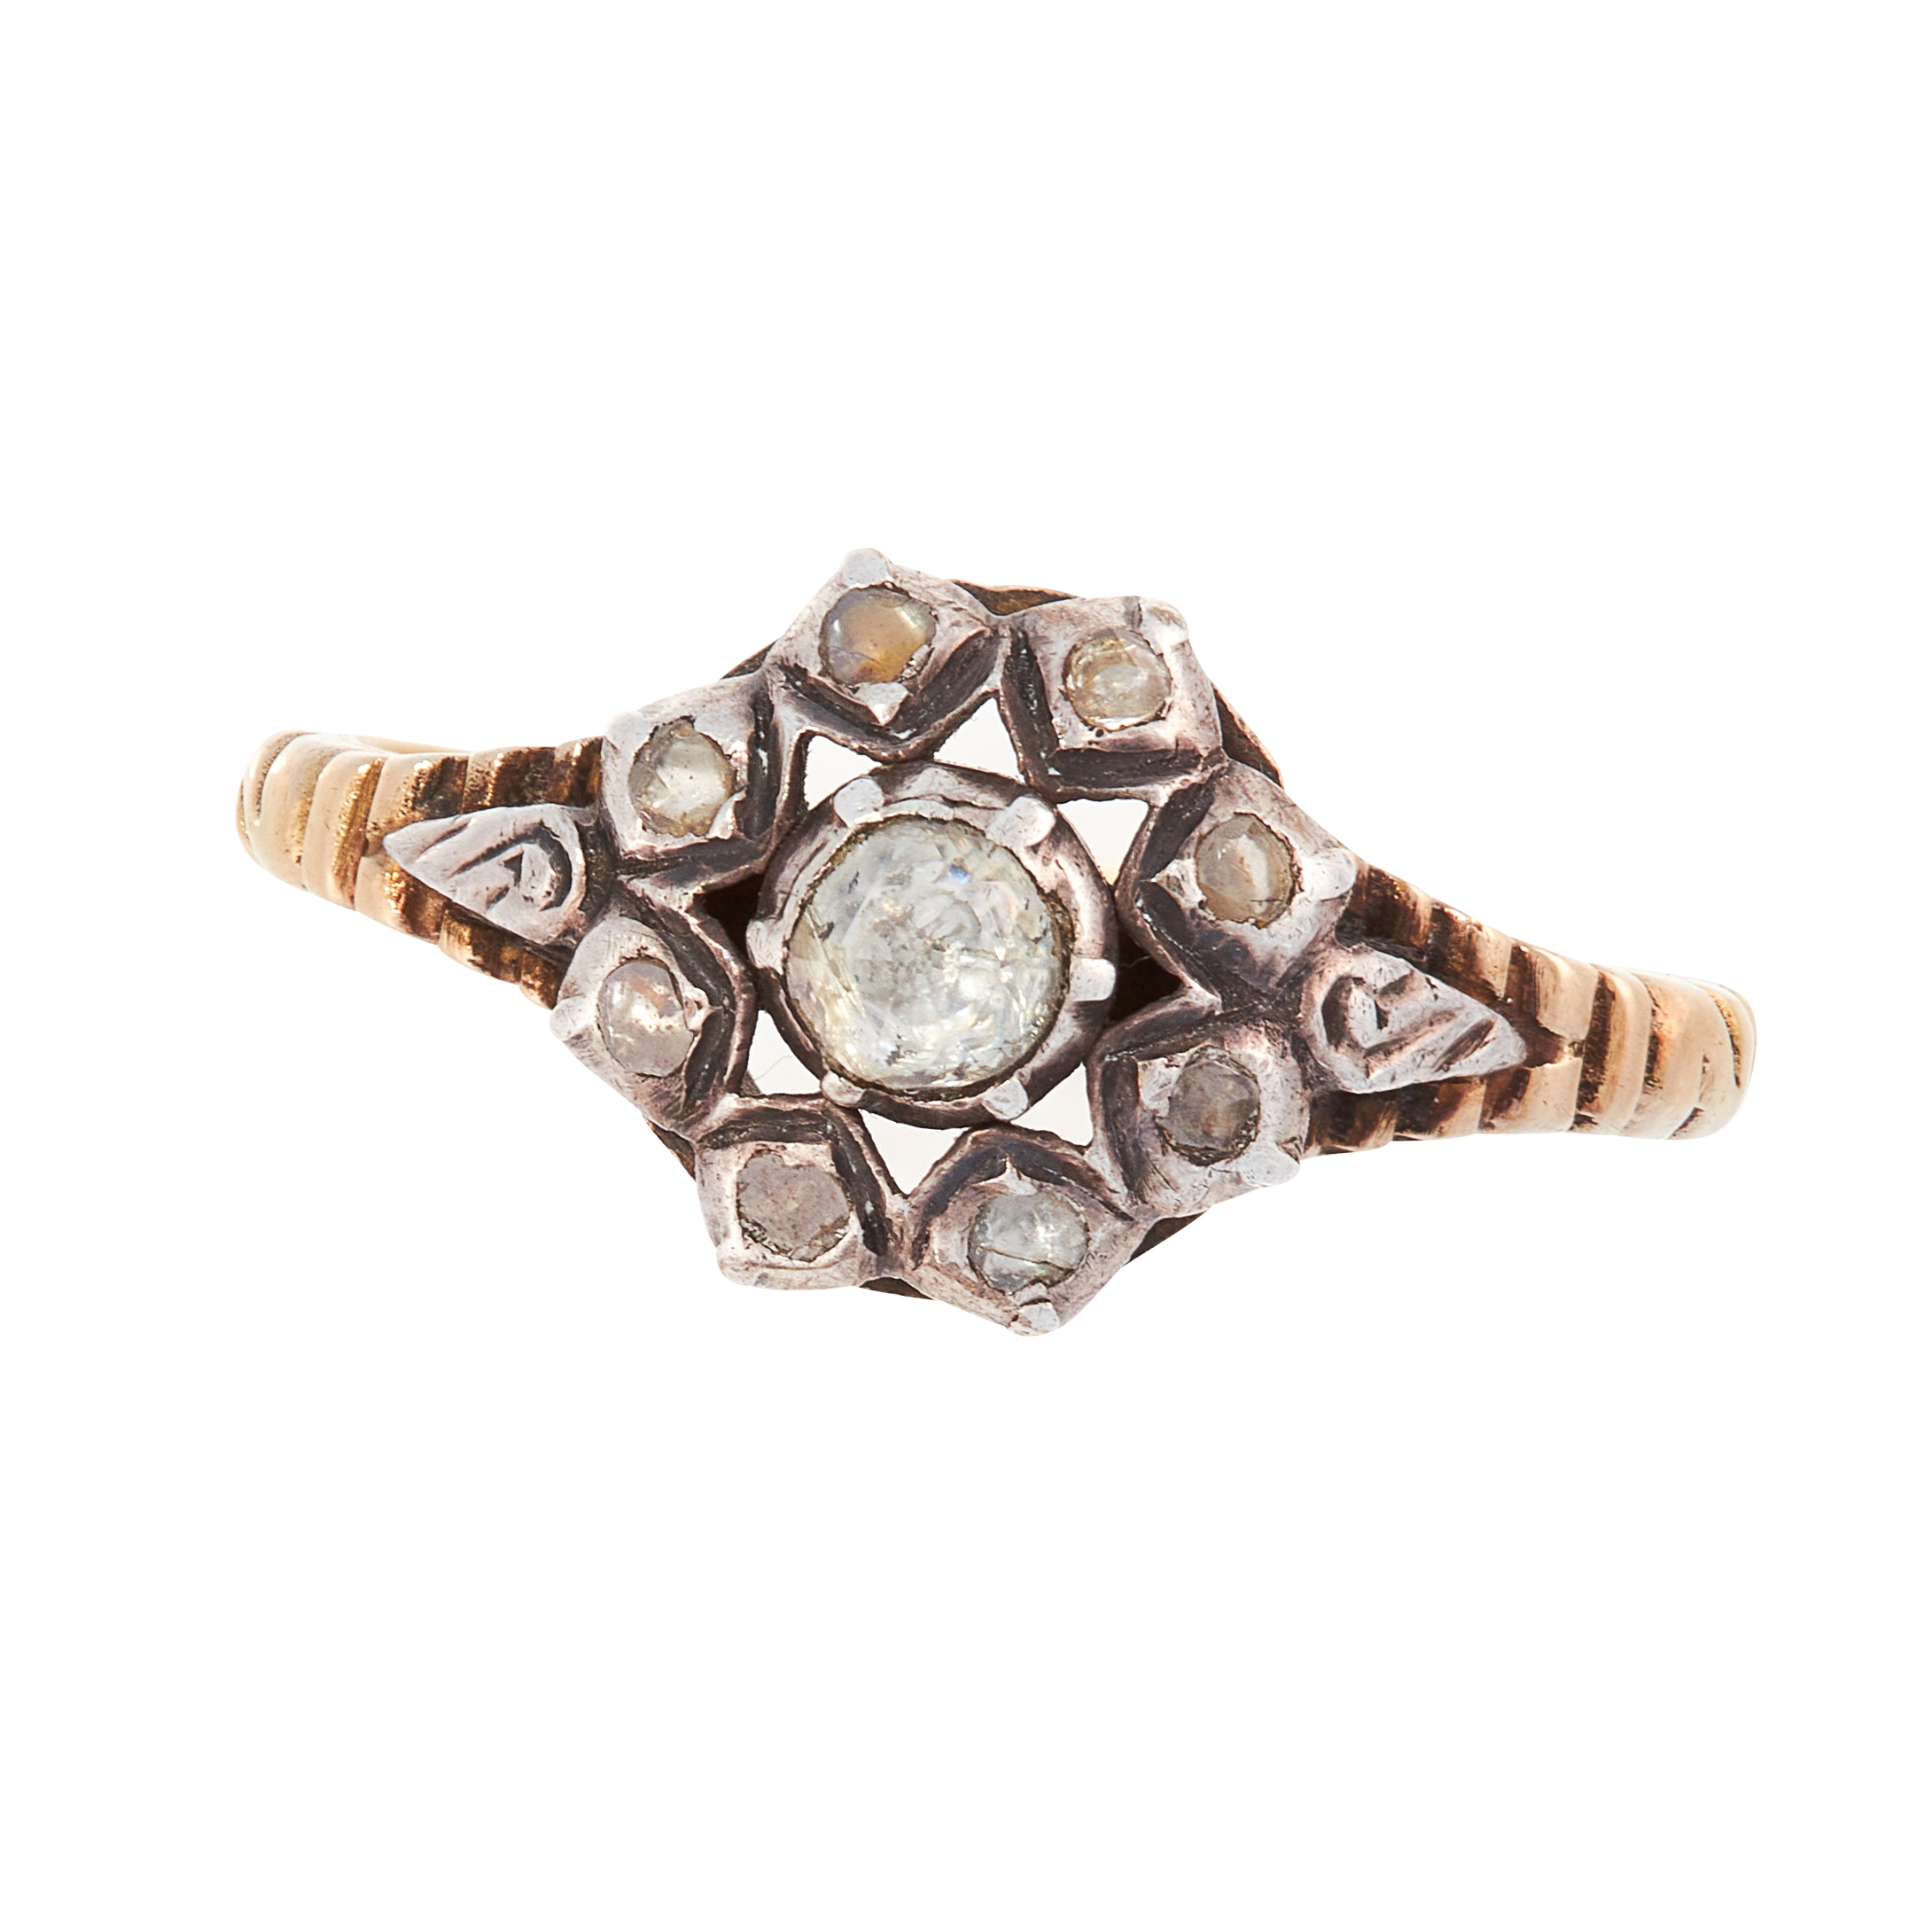 AN ANTIQUE DIAMOND DRESS RING, 19TH CENTURY in yellow gold and silver, designed as a floral